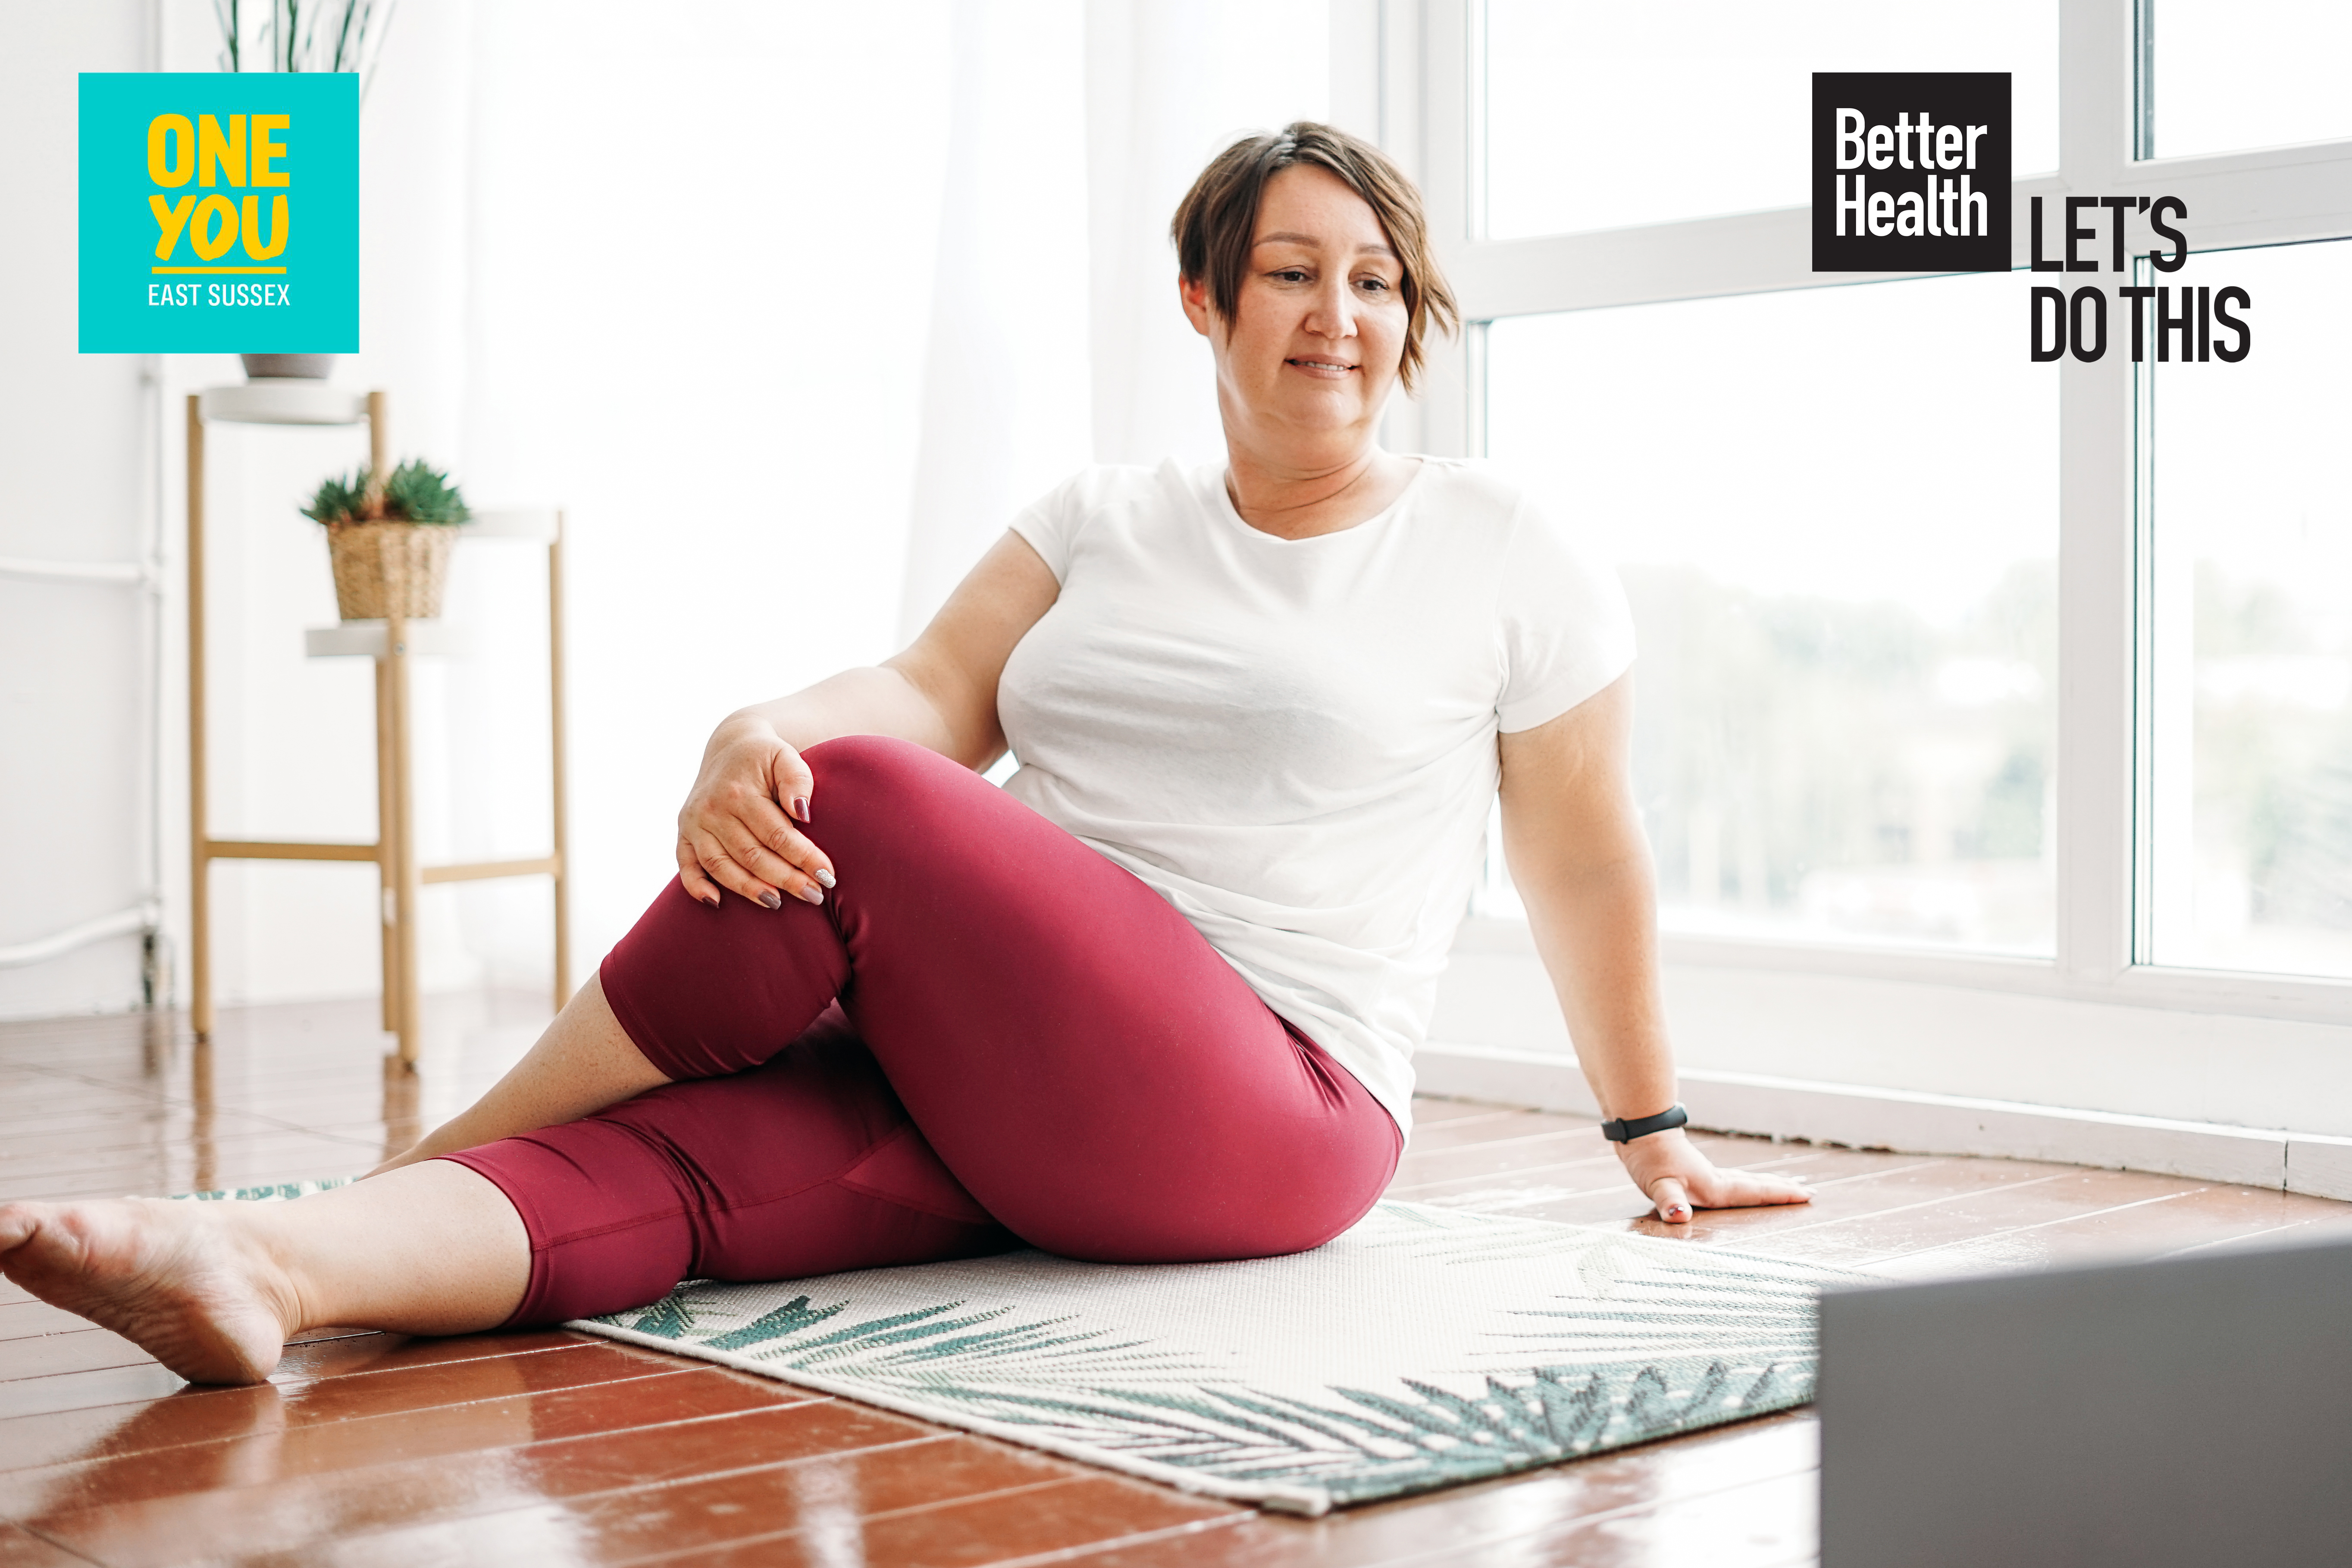 Woman doing leg stretching exercises on a mat on the floor